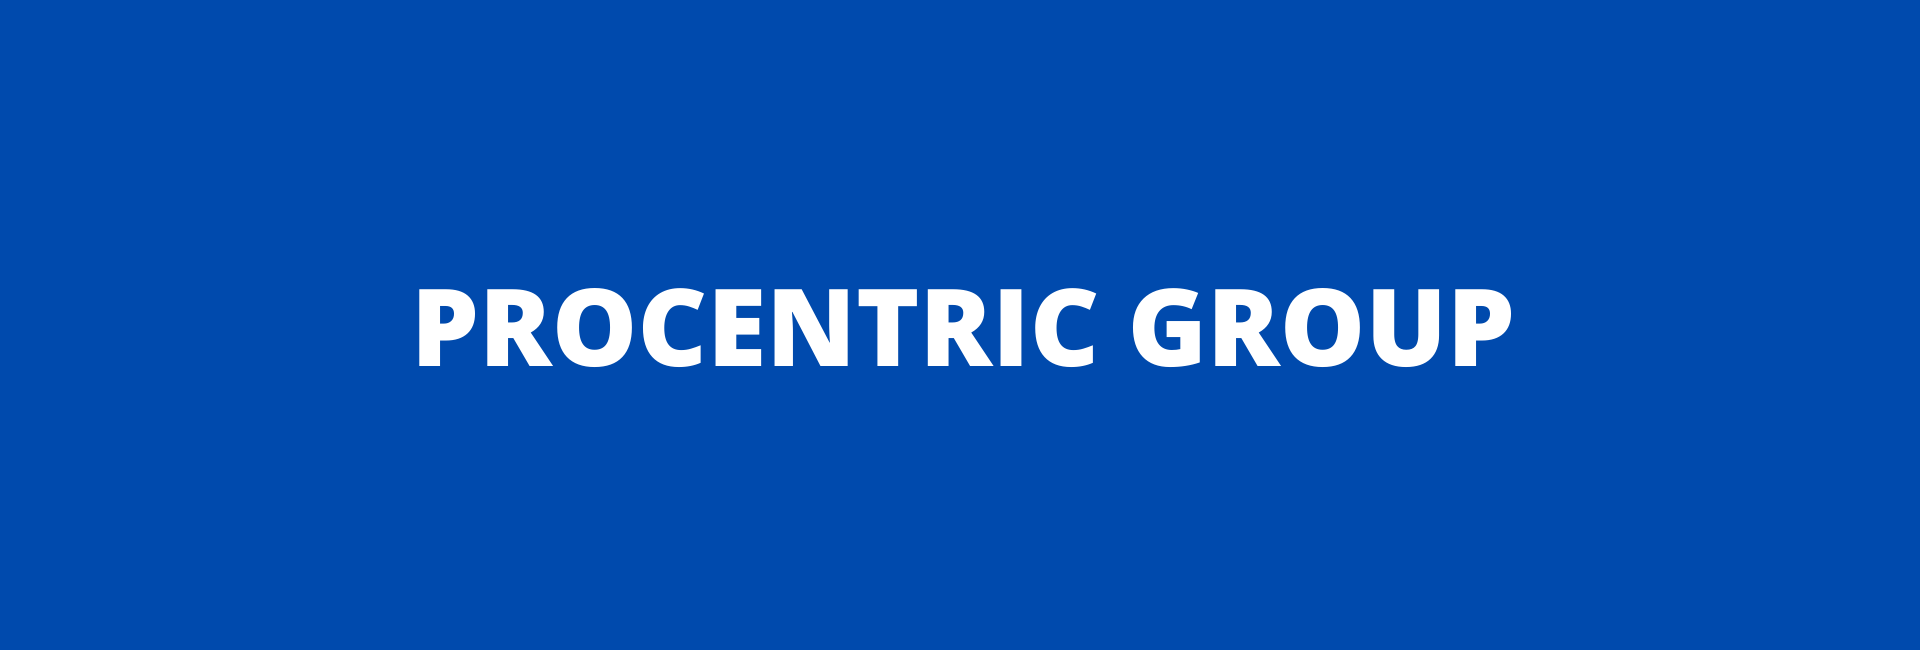 Procentric Group